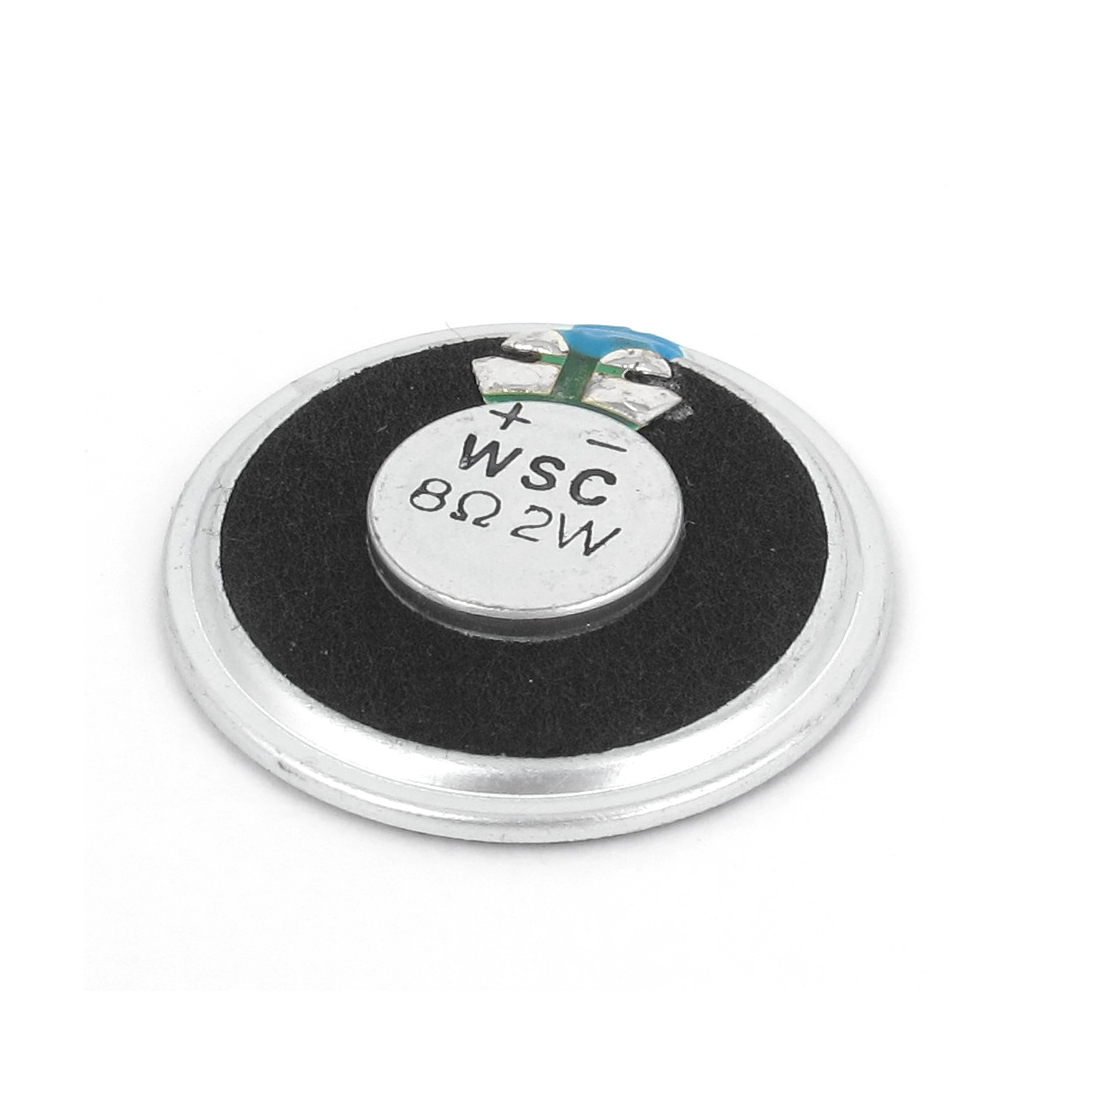 Electronic Toys 40mm Diameter Round Internal Magnet Speaker 8 Ohm 2W